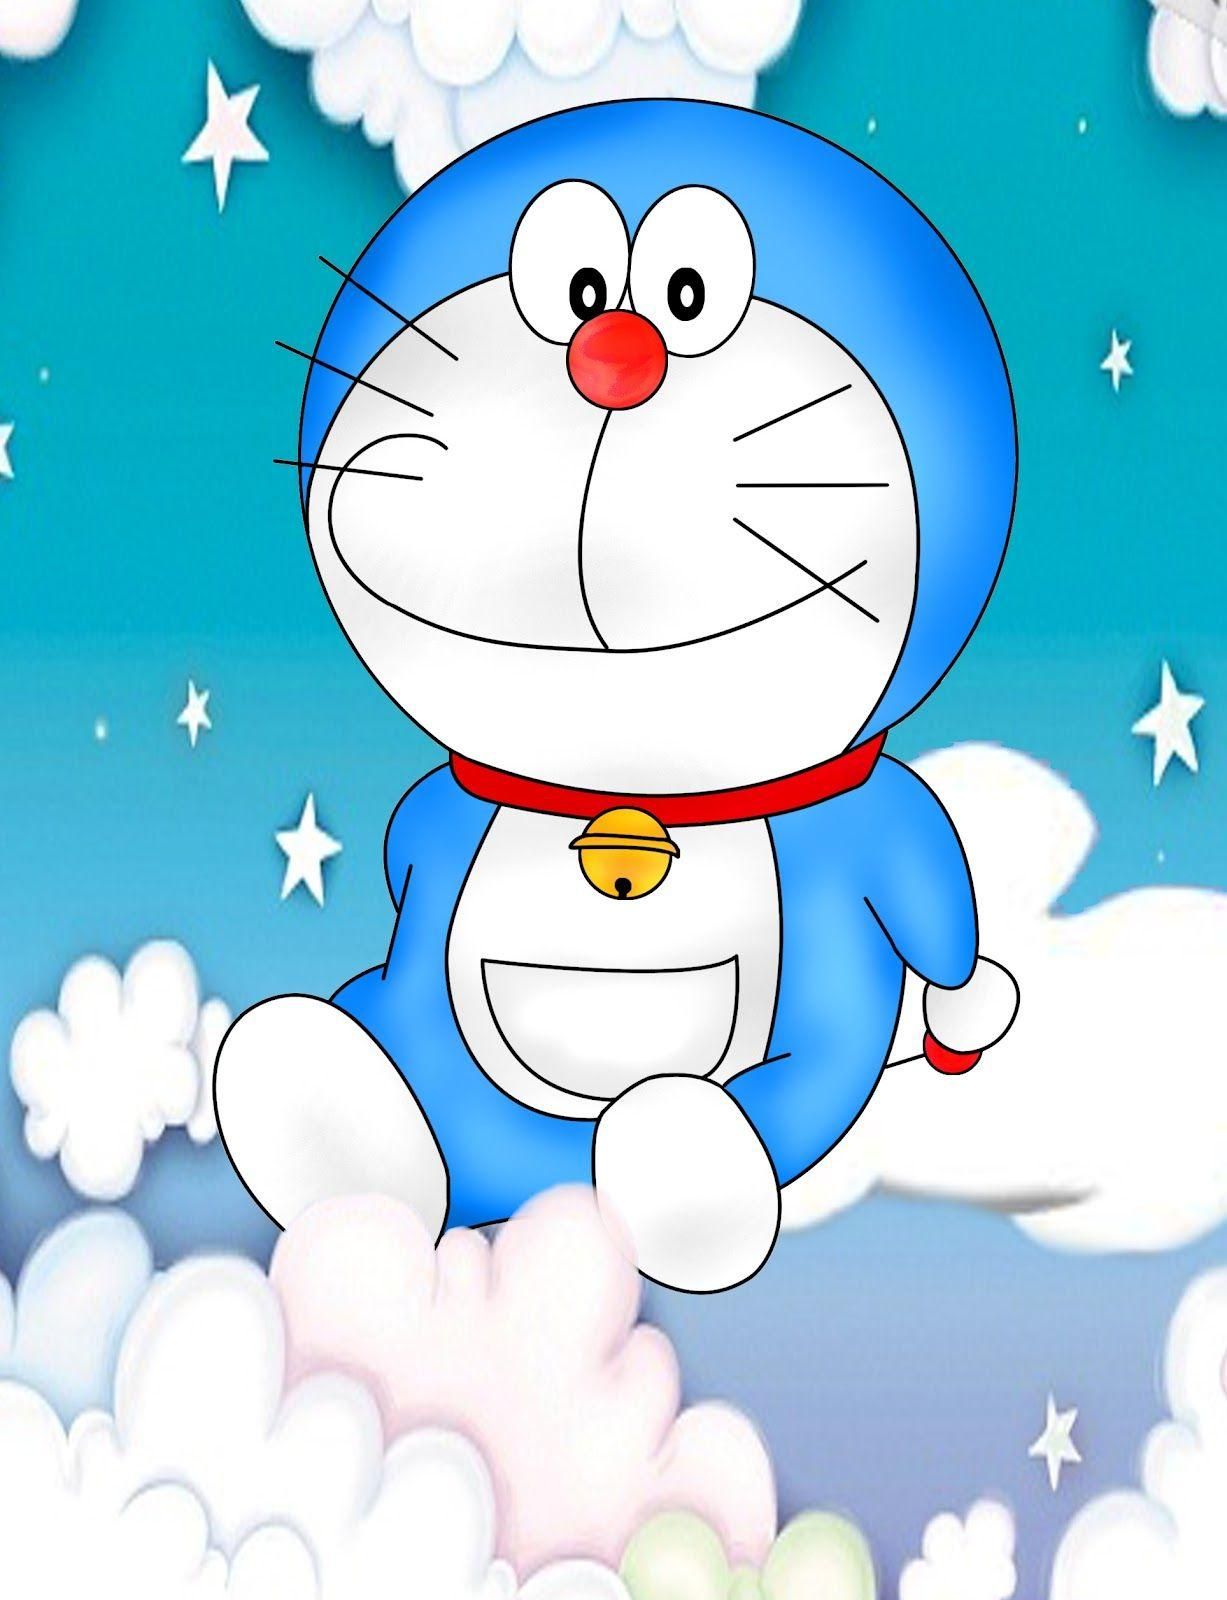 Wallpapers Gambar Doraemon Wallpaper Cave